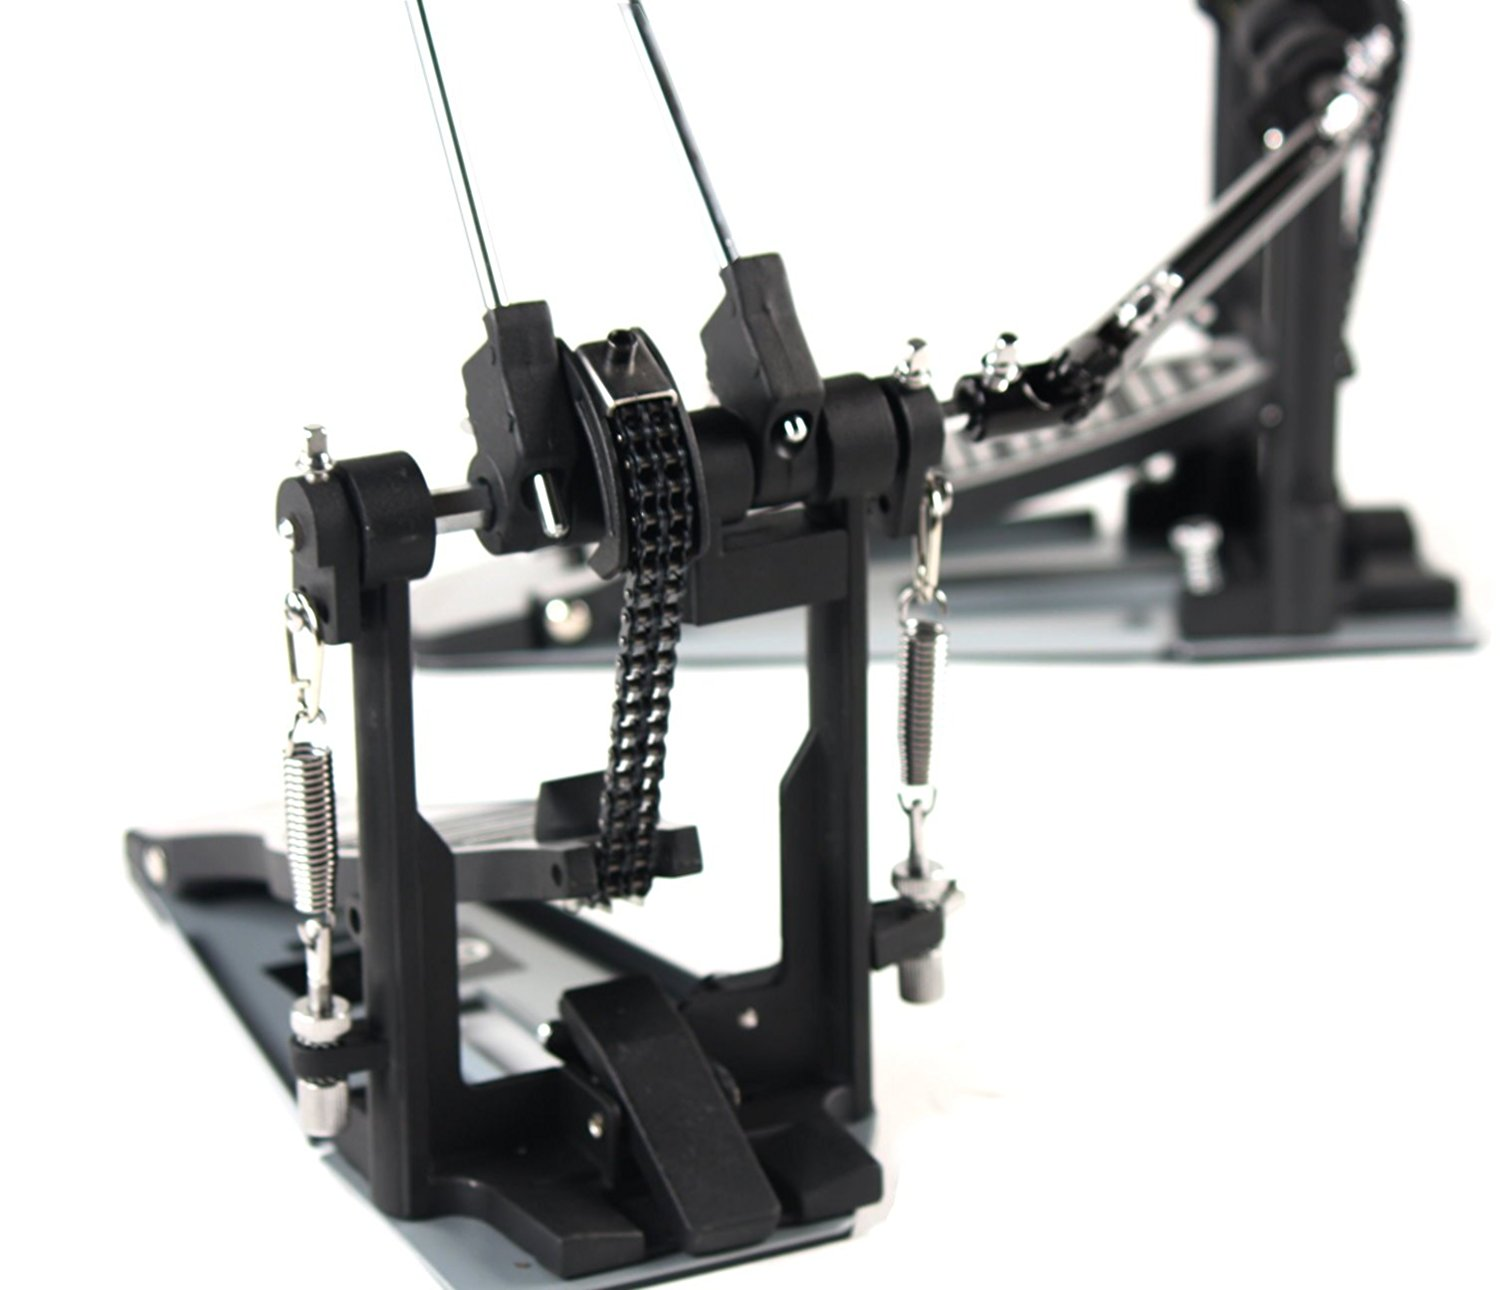 deluxe double kick drum pedal for bass drum by griffin twin set foot pedal quad sided beater. Black Bedroom Furniture Sets. Home Design Ideas